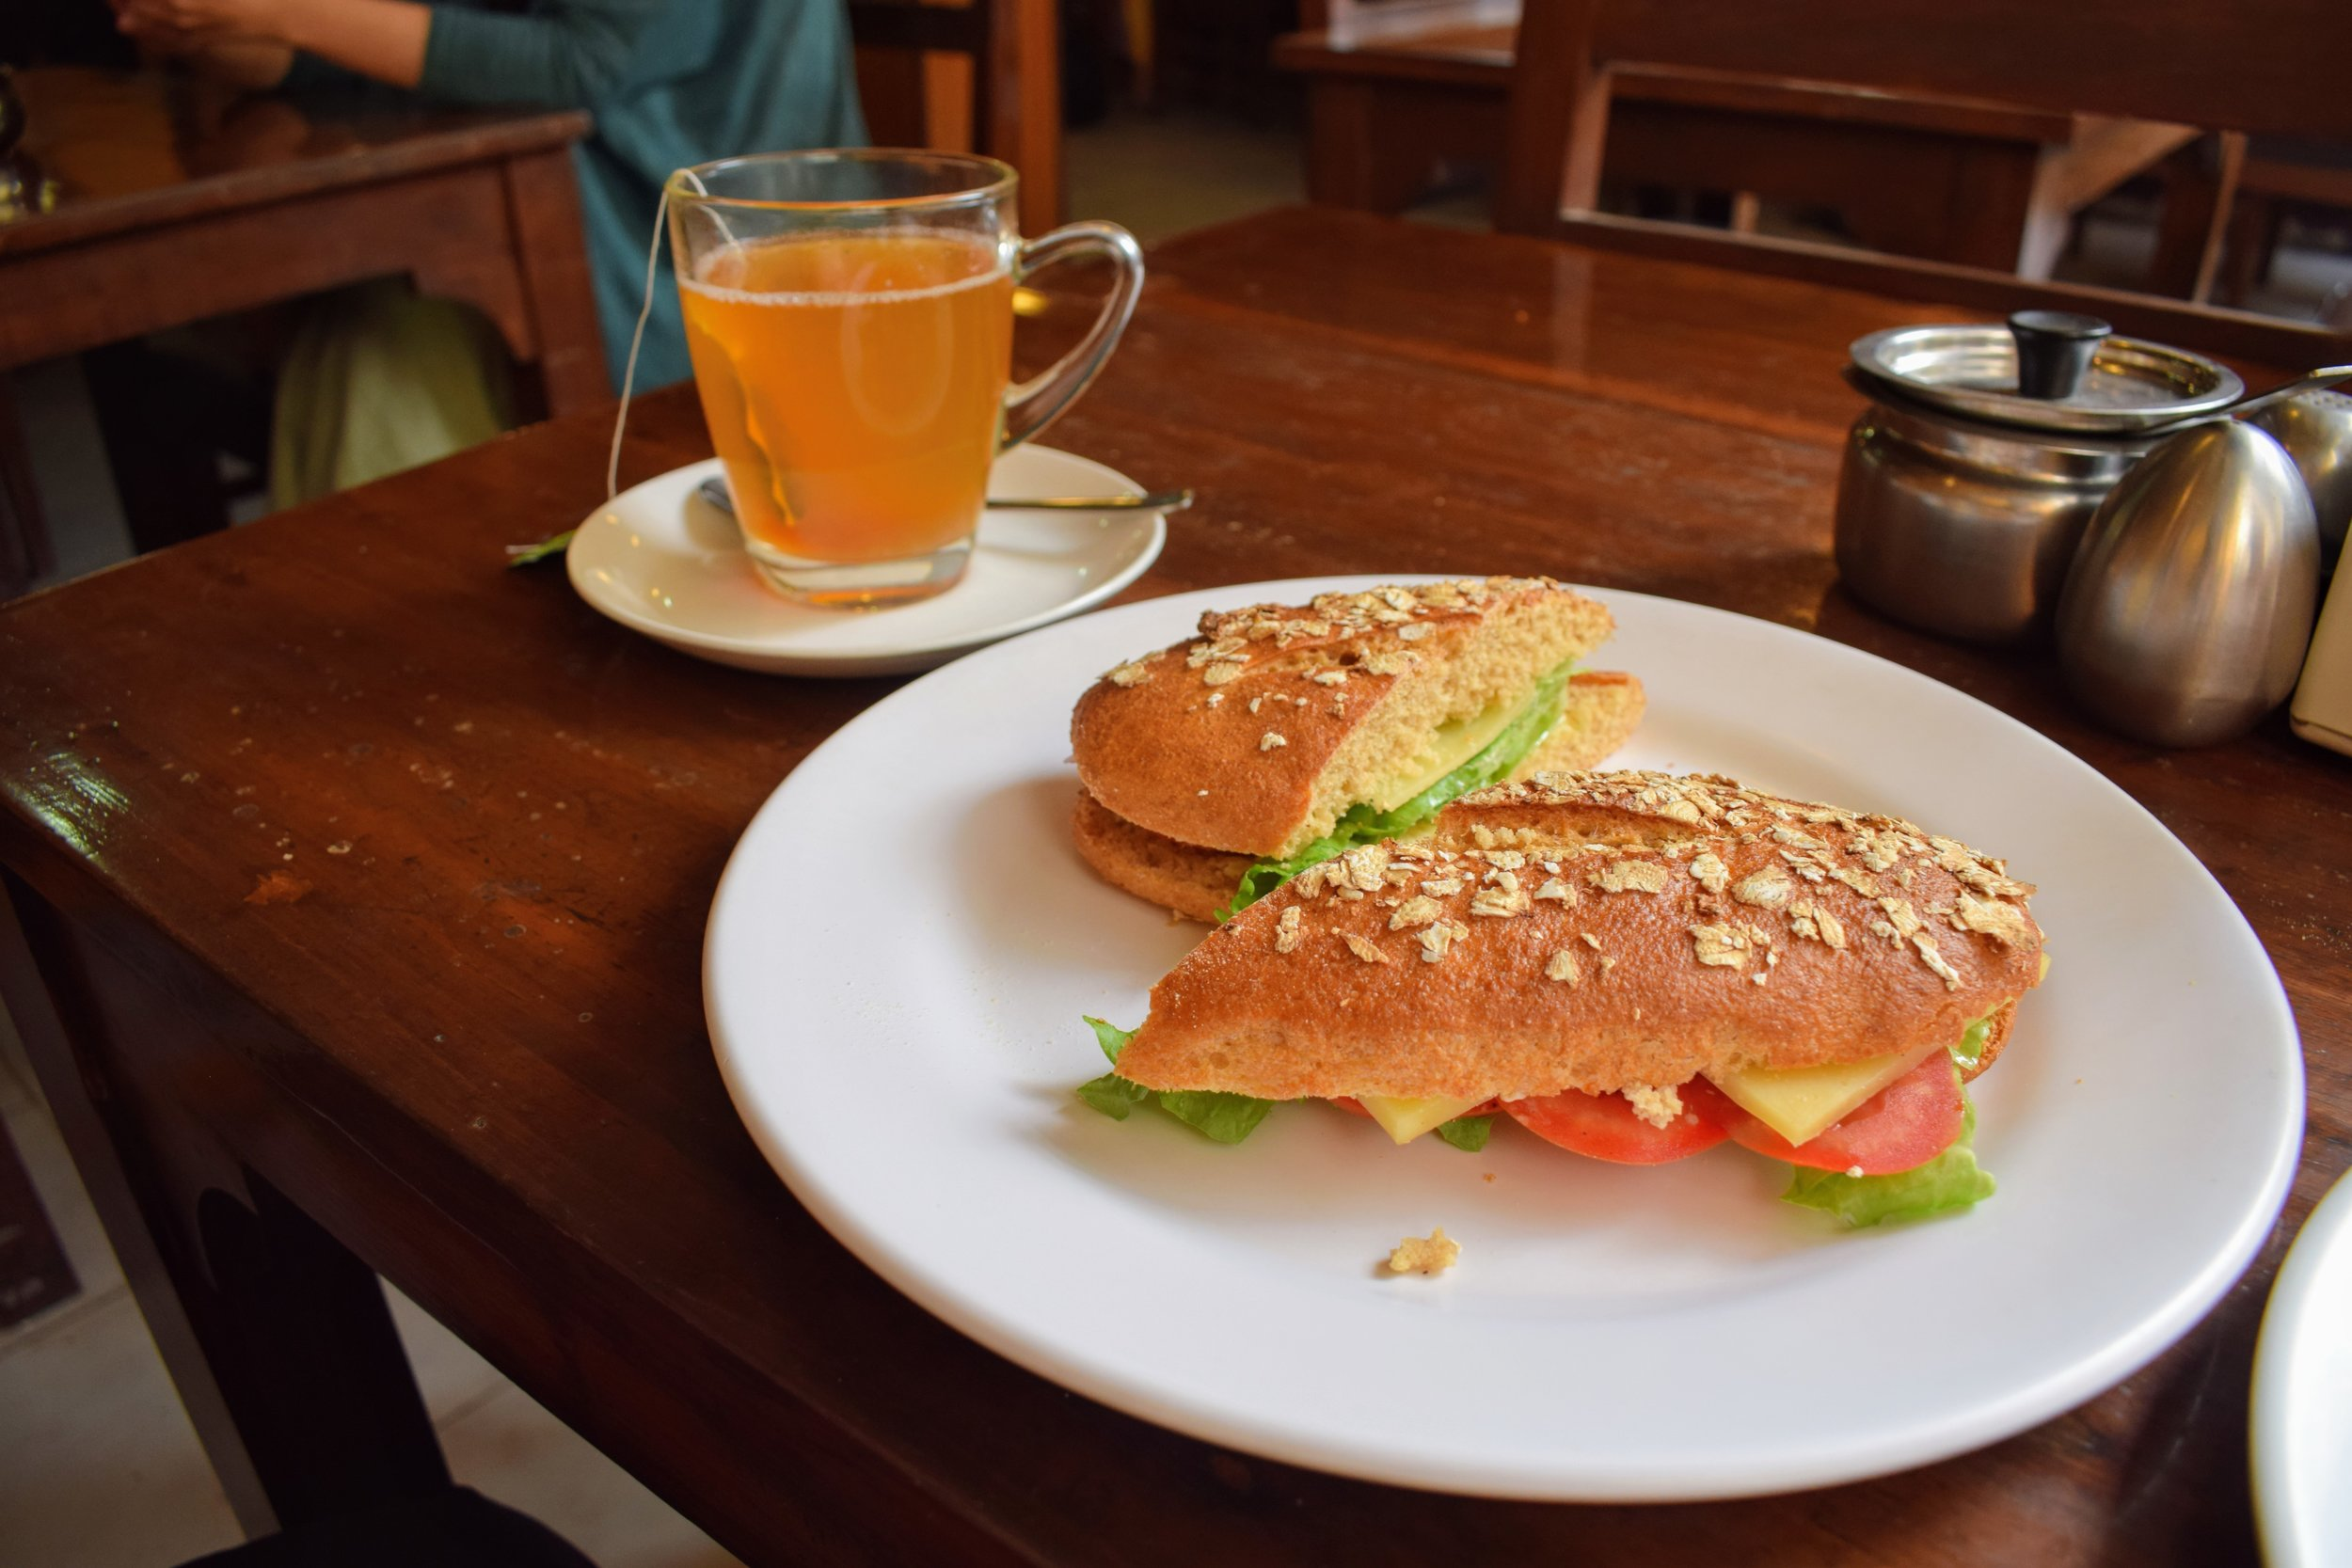 Ginger lemon honey tea and a yak cheese sandwich on fresh bread at Pumpernickel Bakery in Thamel.